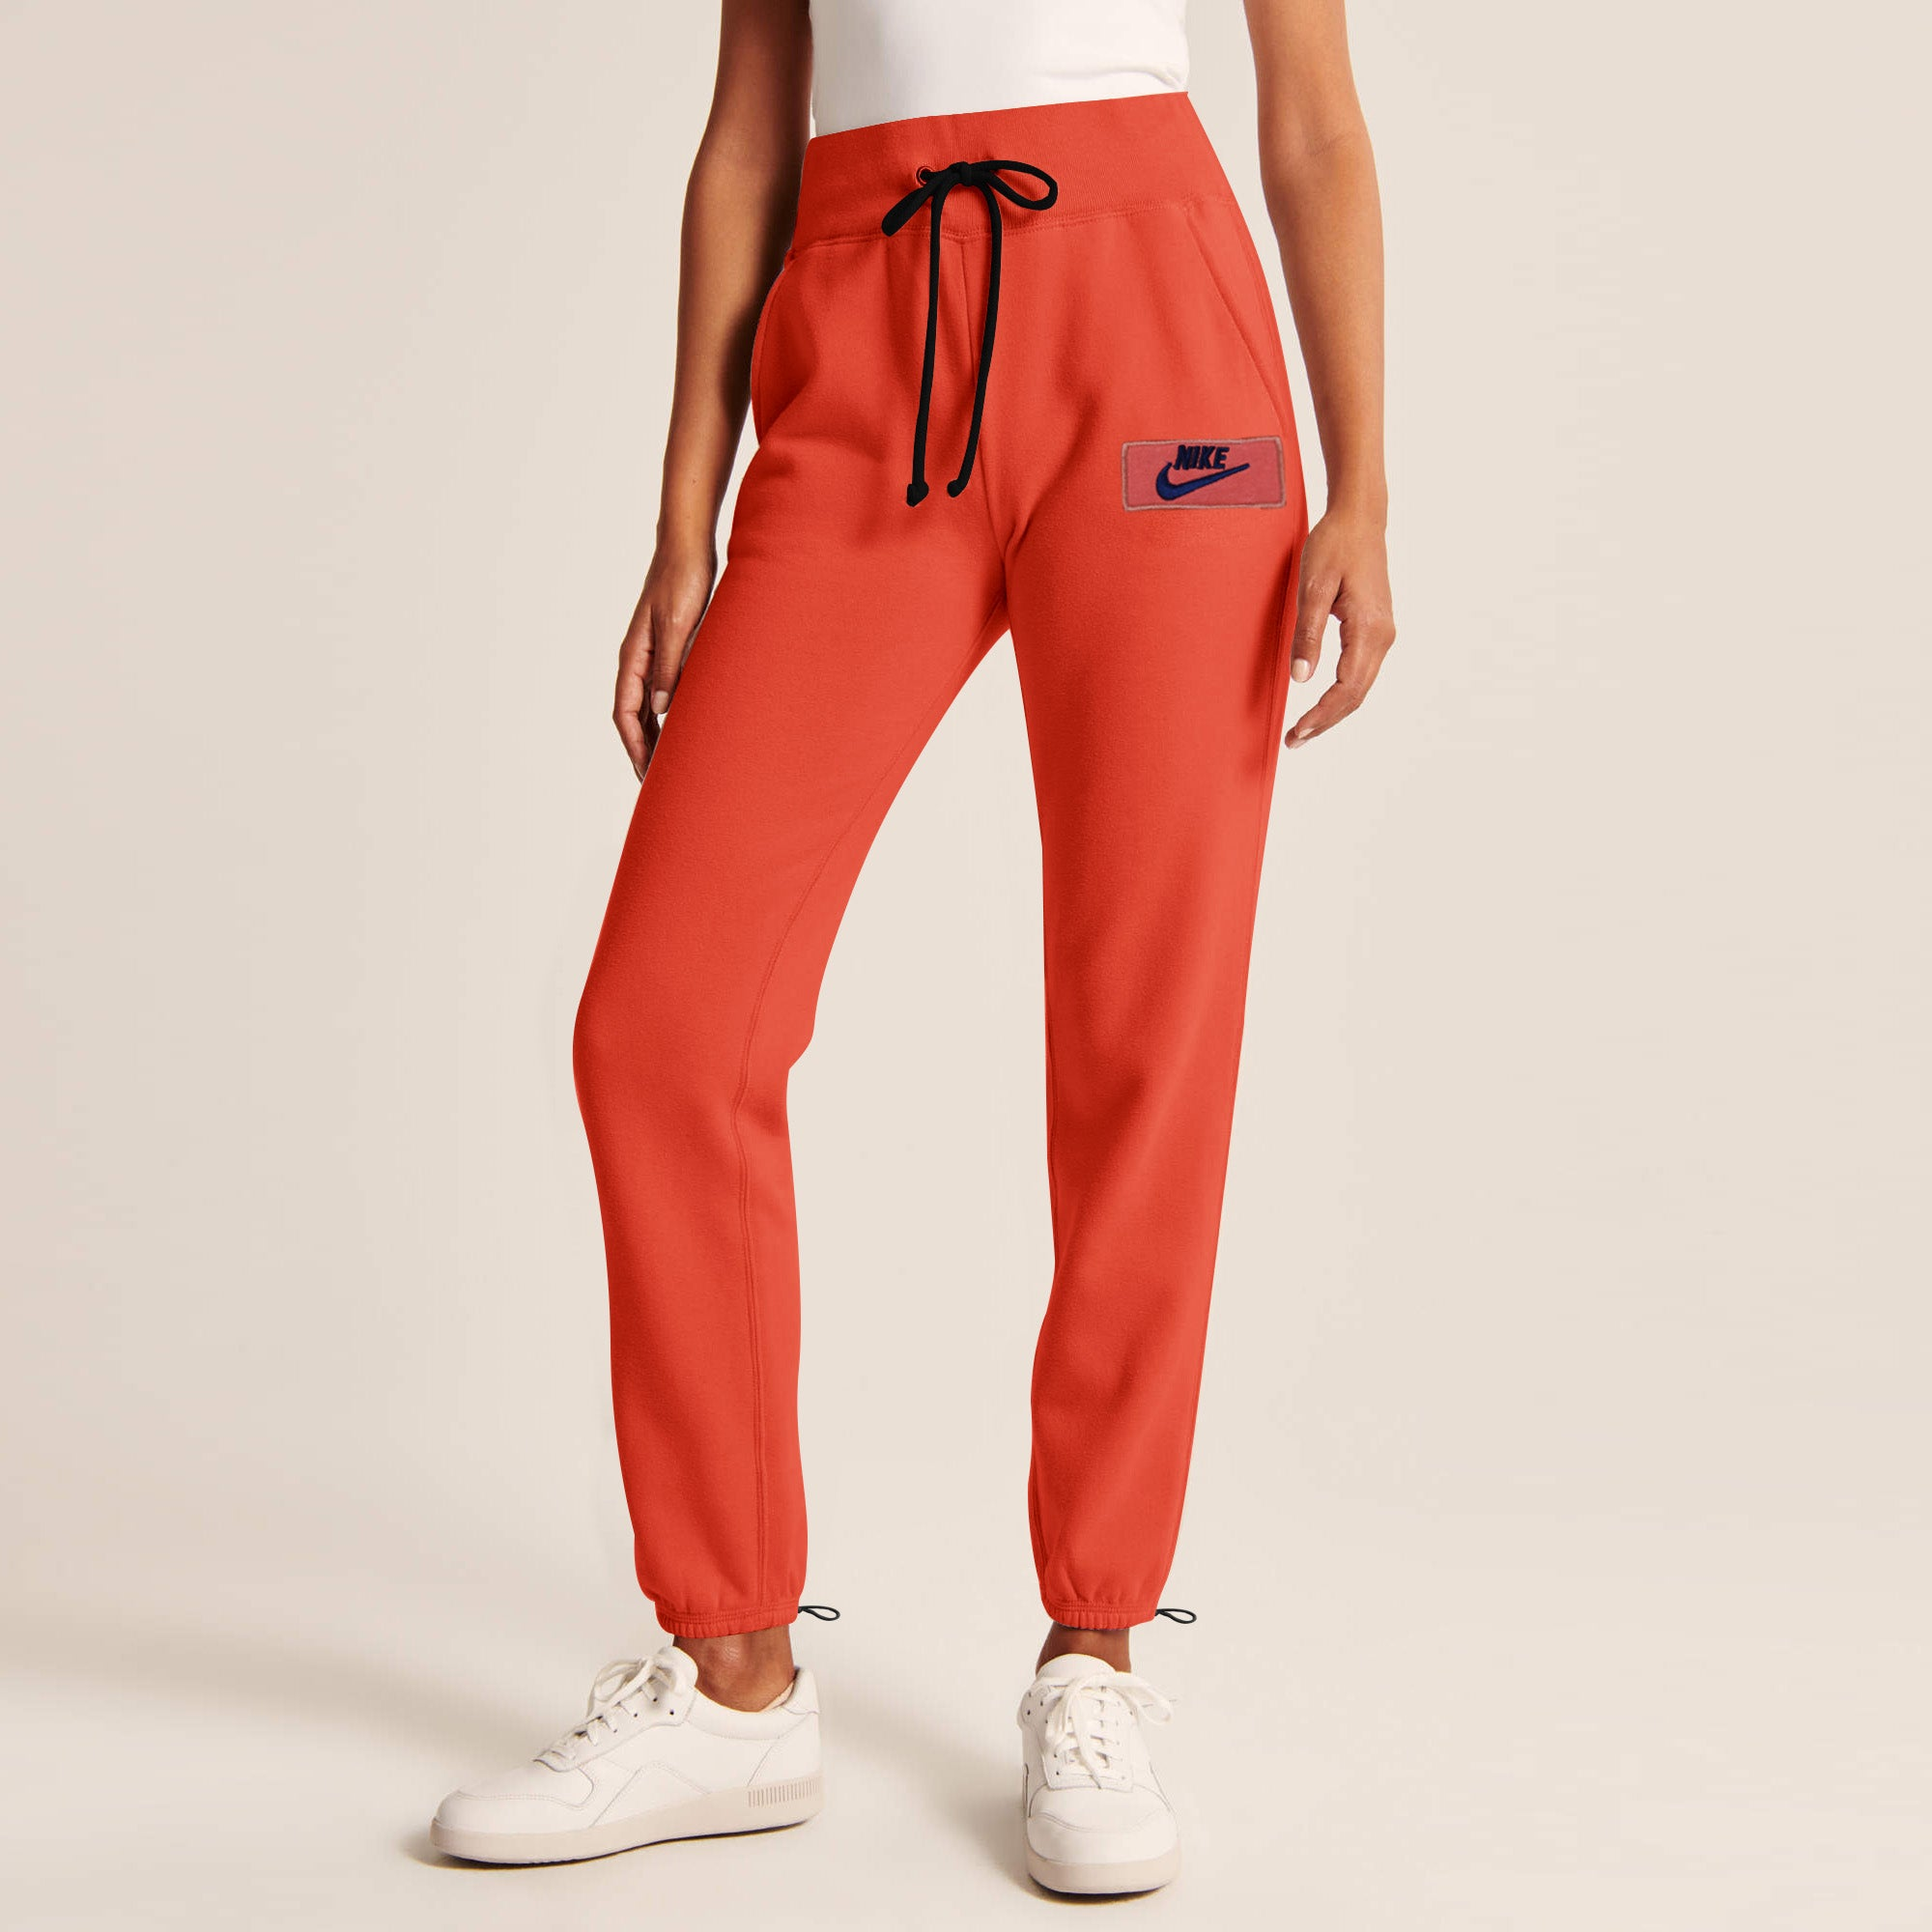 NK Terry Fleece Gathering Bottom Trouser For Ladies-Blaze Orange Navy Embroidery-AN1955